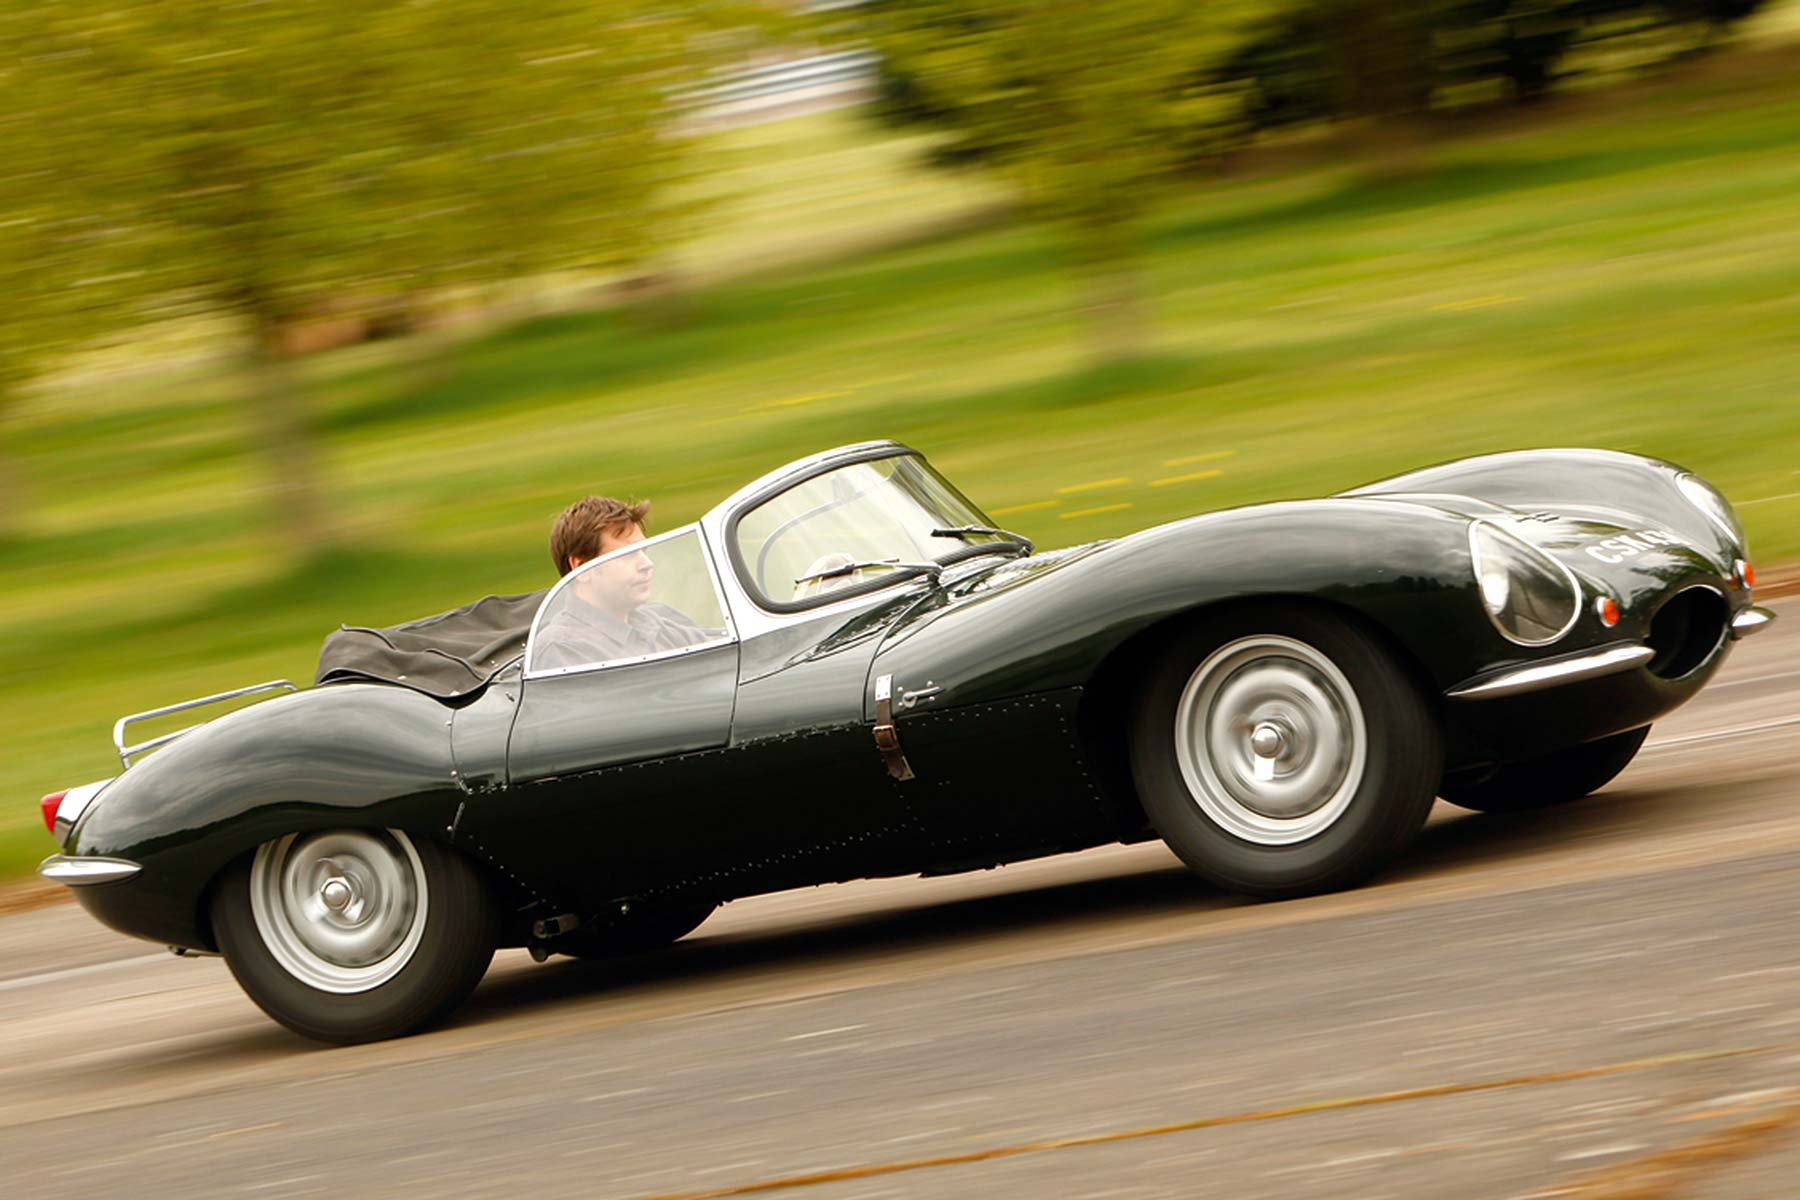 10 British classic cars: which will be voted the best? | Motoring ...